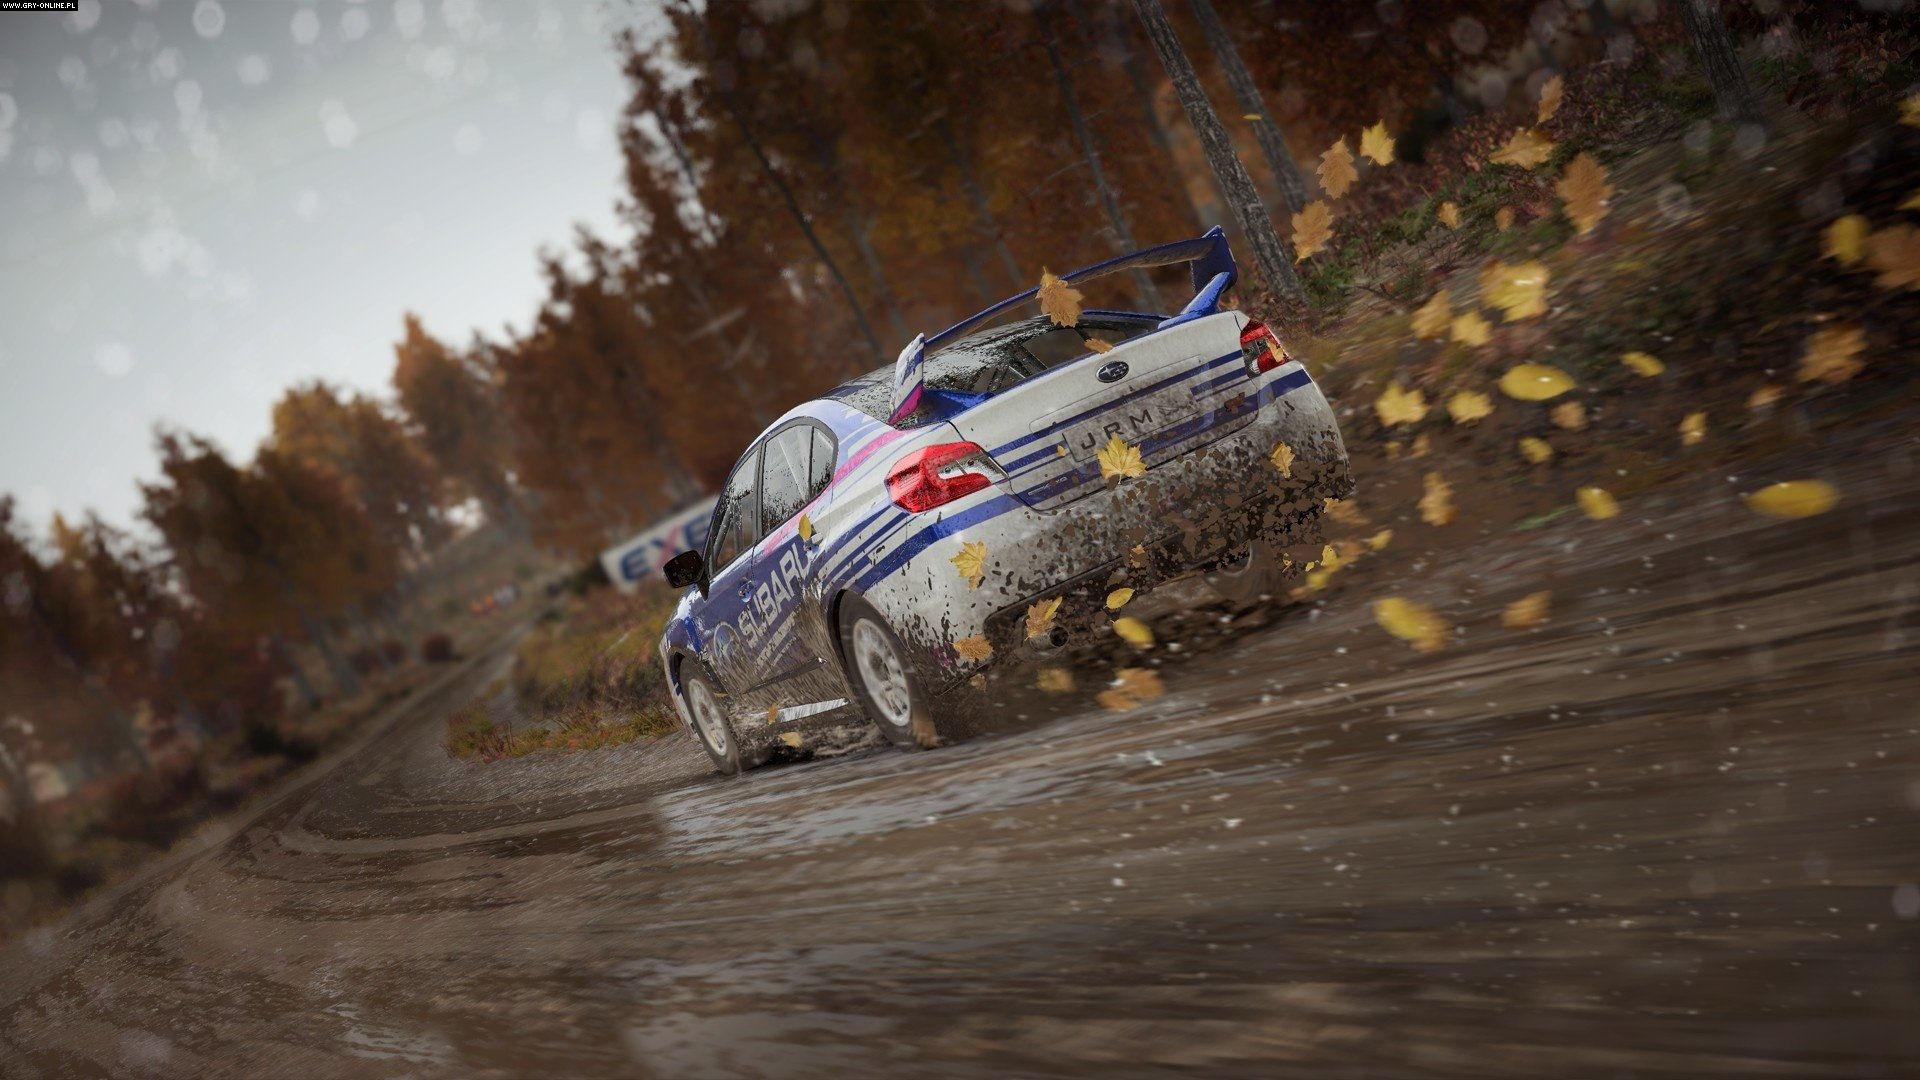 DiRT 4 PC, PS4, XONE Games Image 5/66, Codemasters Software